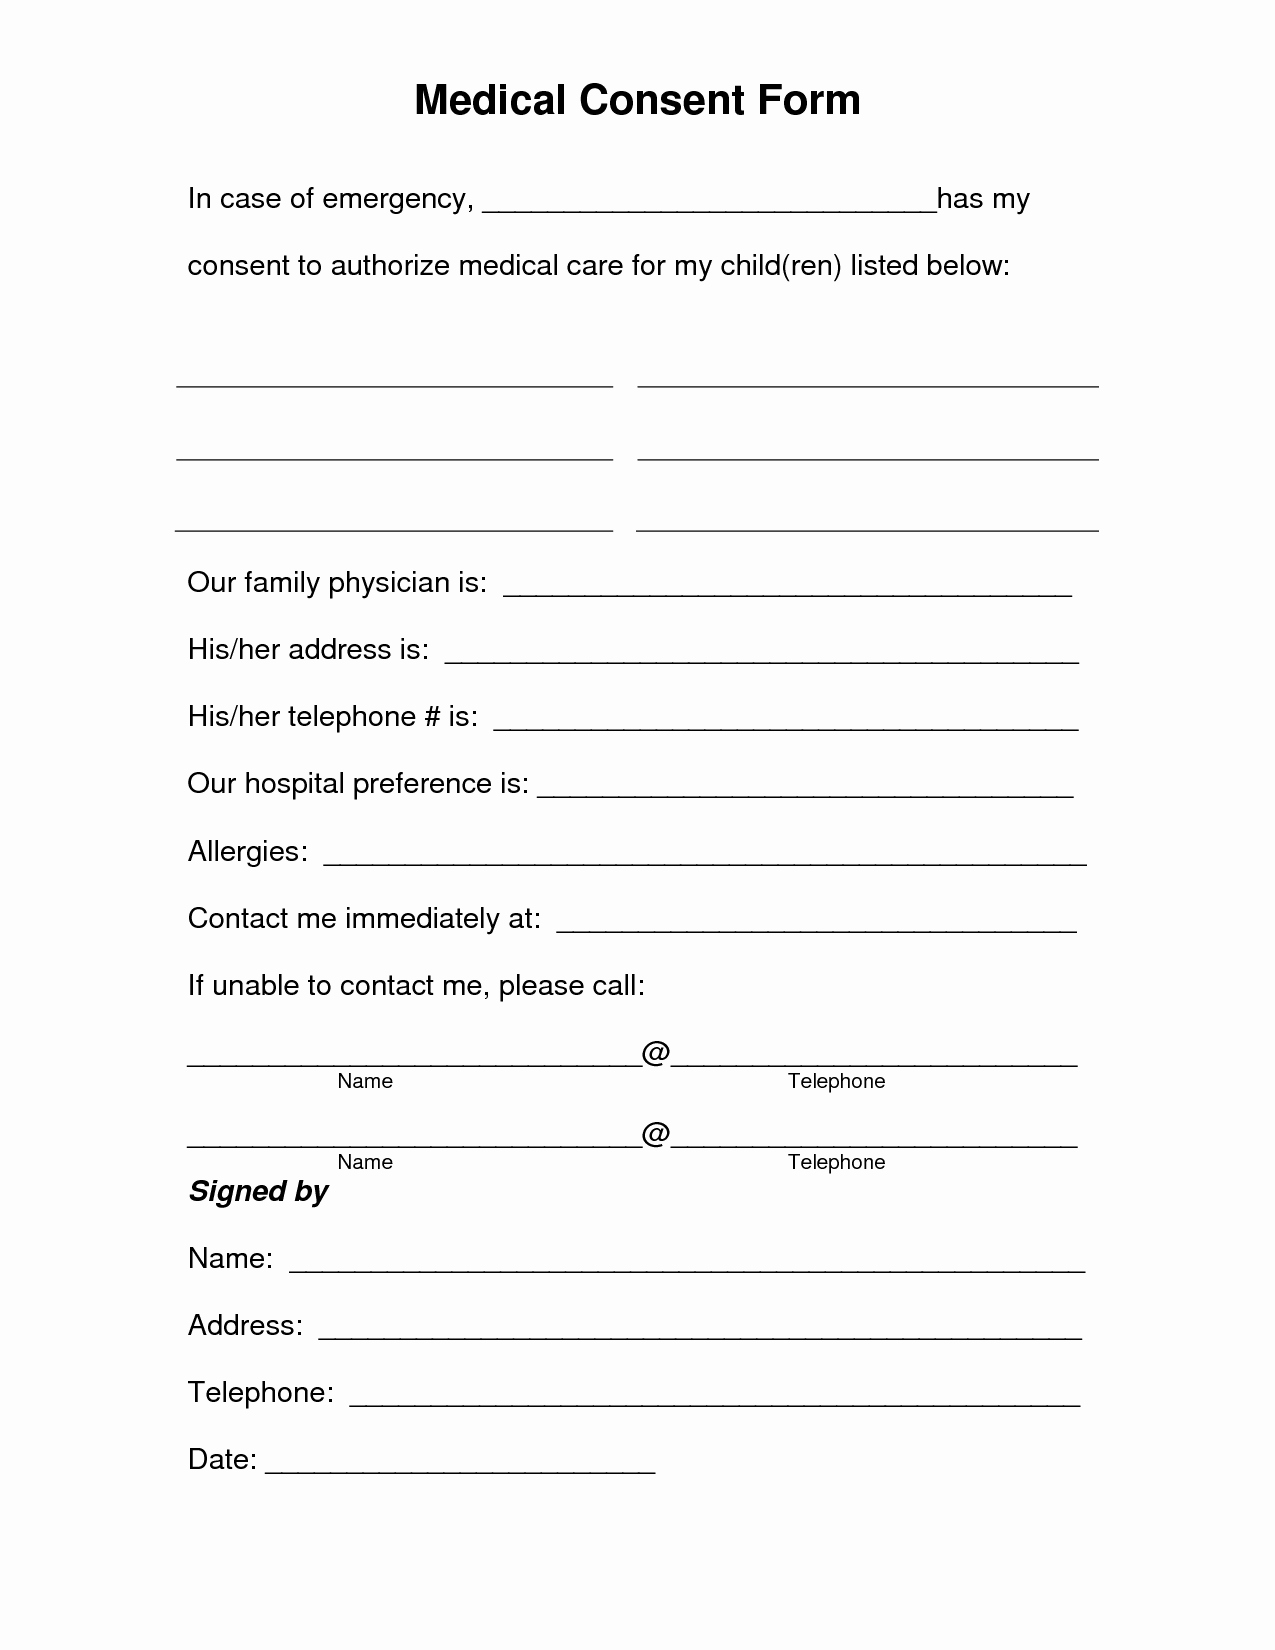 Video Consent form Template Elegant Free Printable Medical Consent form